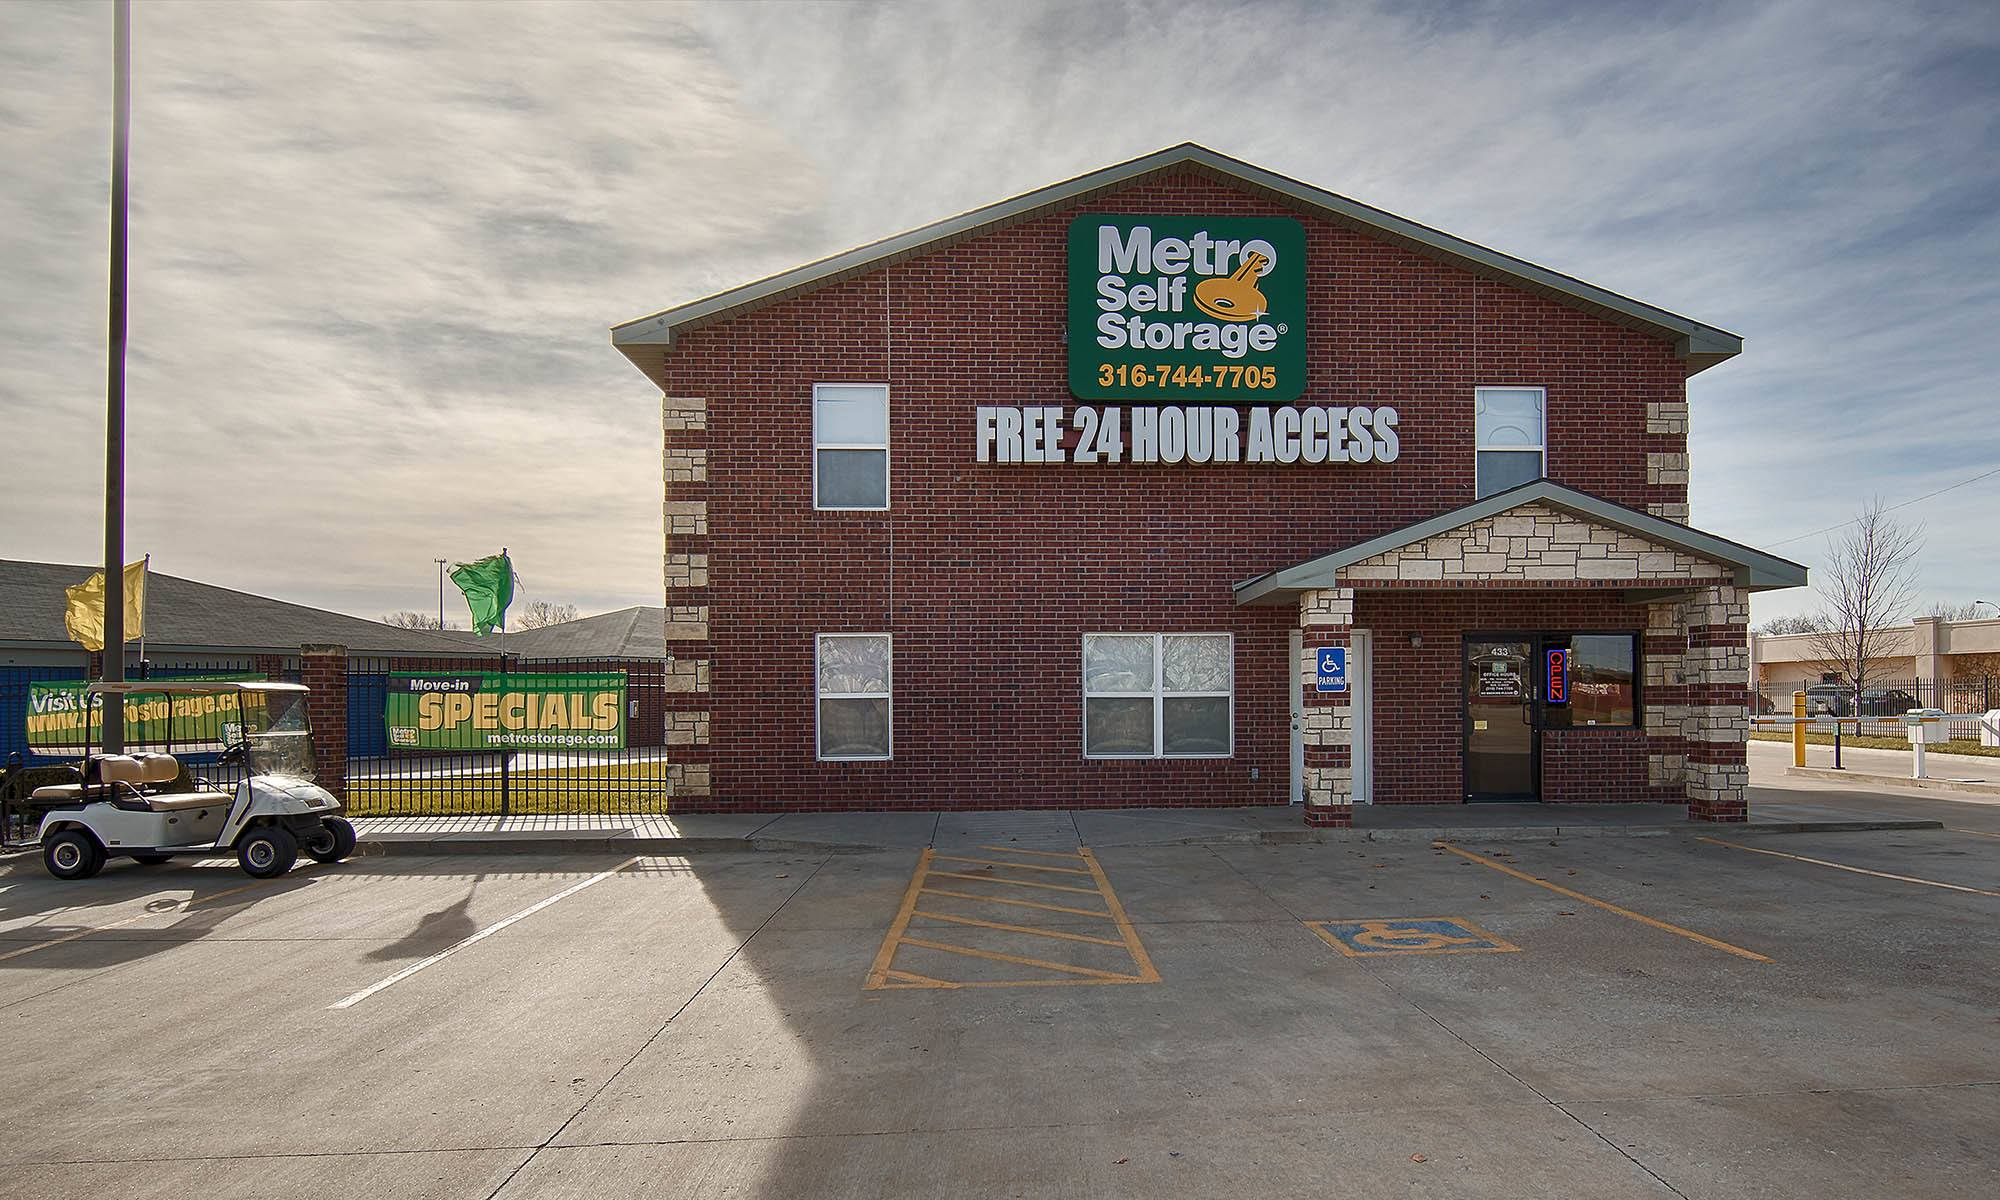 Metro Self Storage in Park City, KS